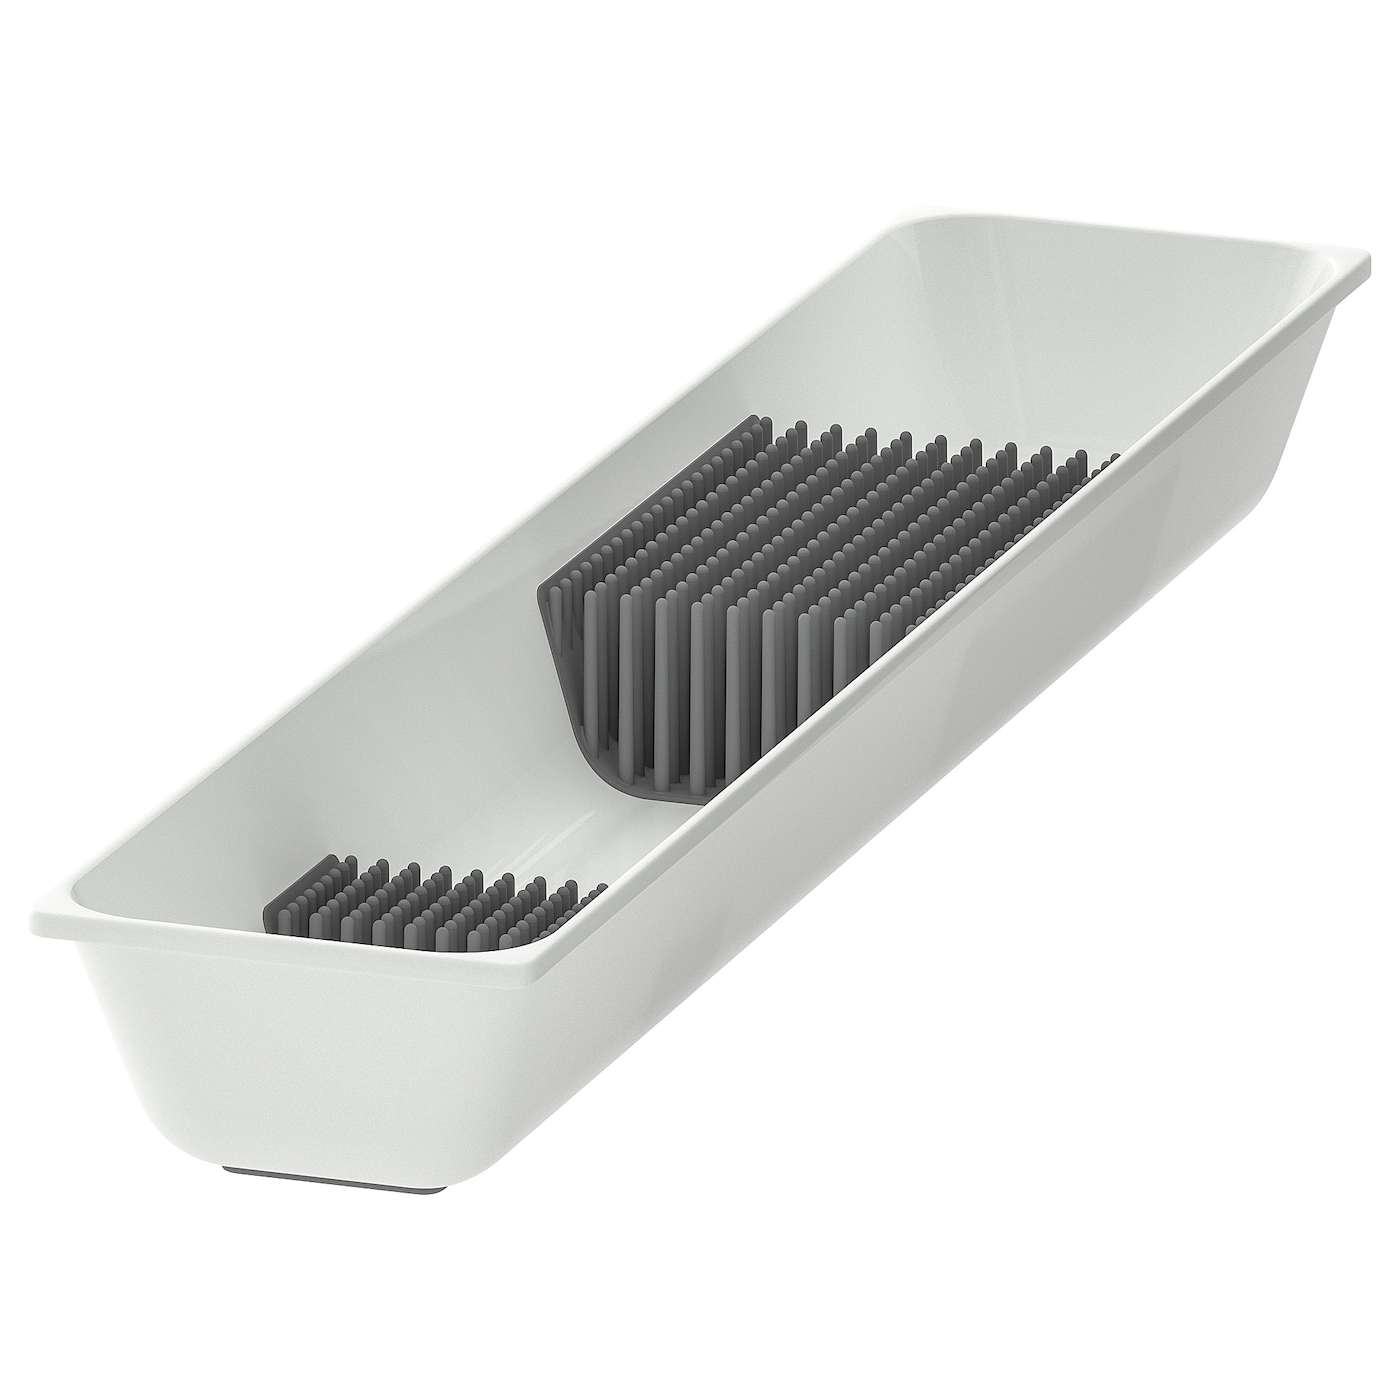 IKEA VARIERA knife tray Looks after your knives and keeps them sharp longer.